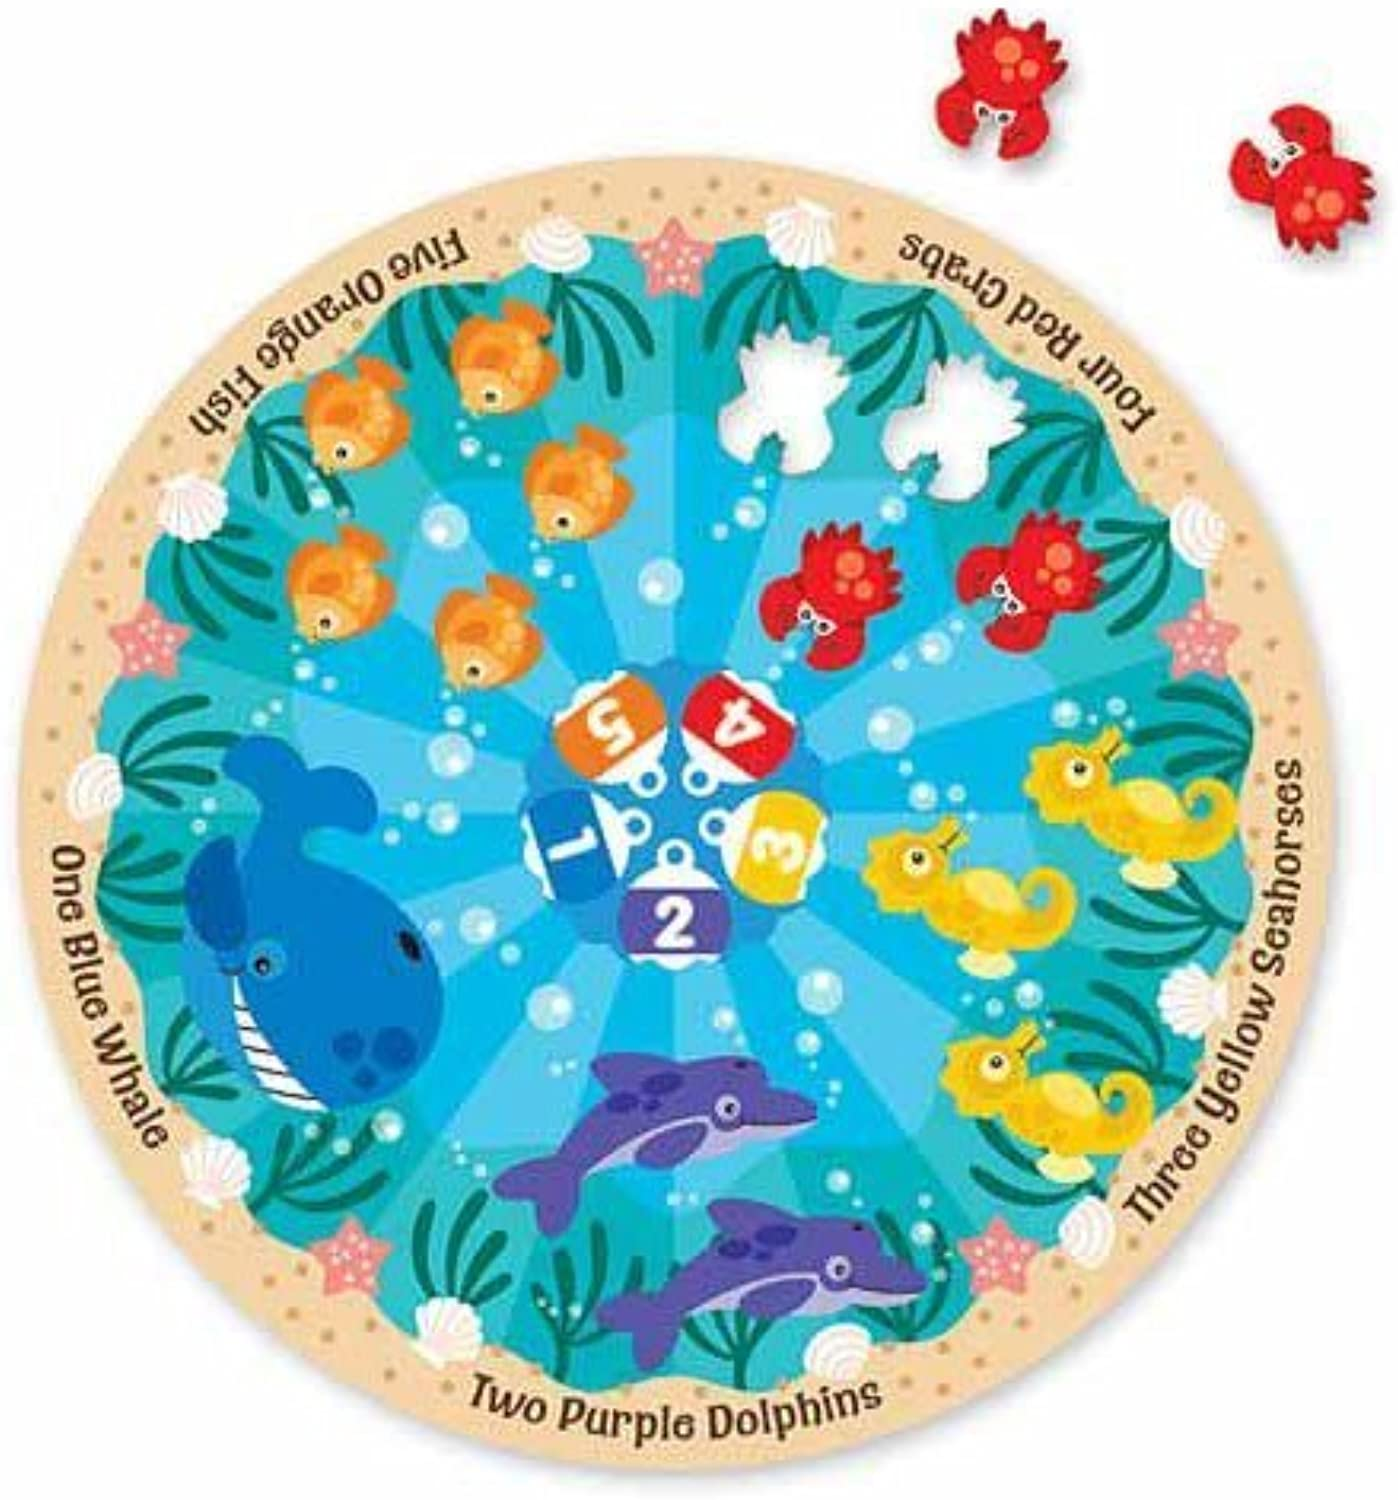 Melissa & Doug Sea Friends Fresh Start Circular Floor Puzzle